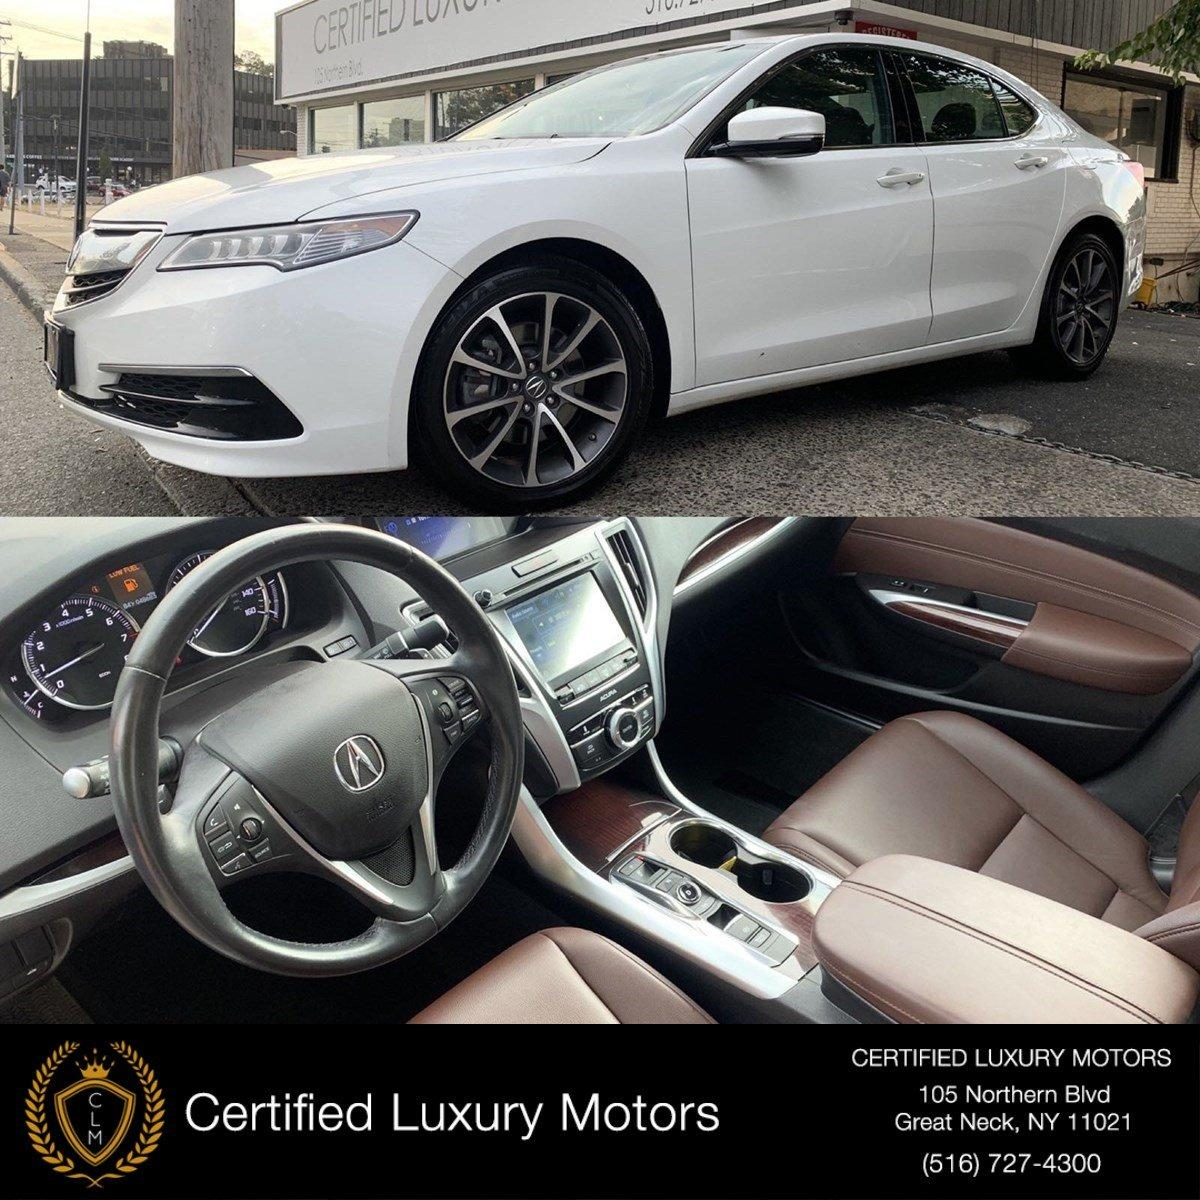 2016 Acura TLX V6 Stock # C0277 For Sale Near Great Neck